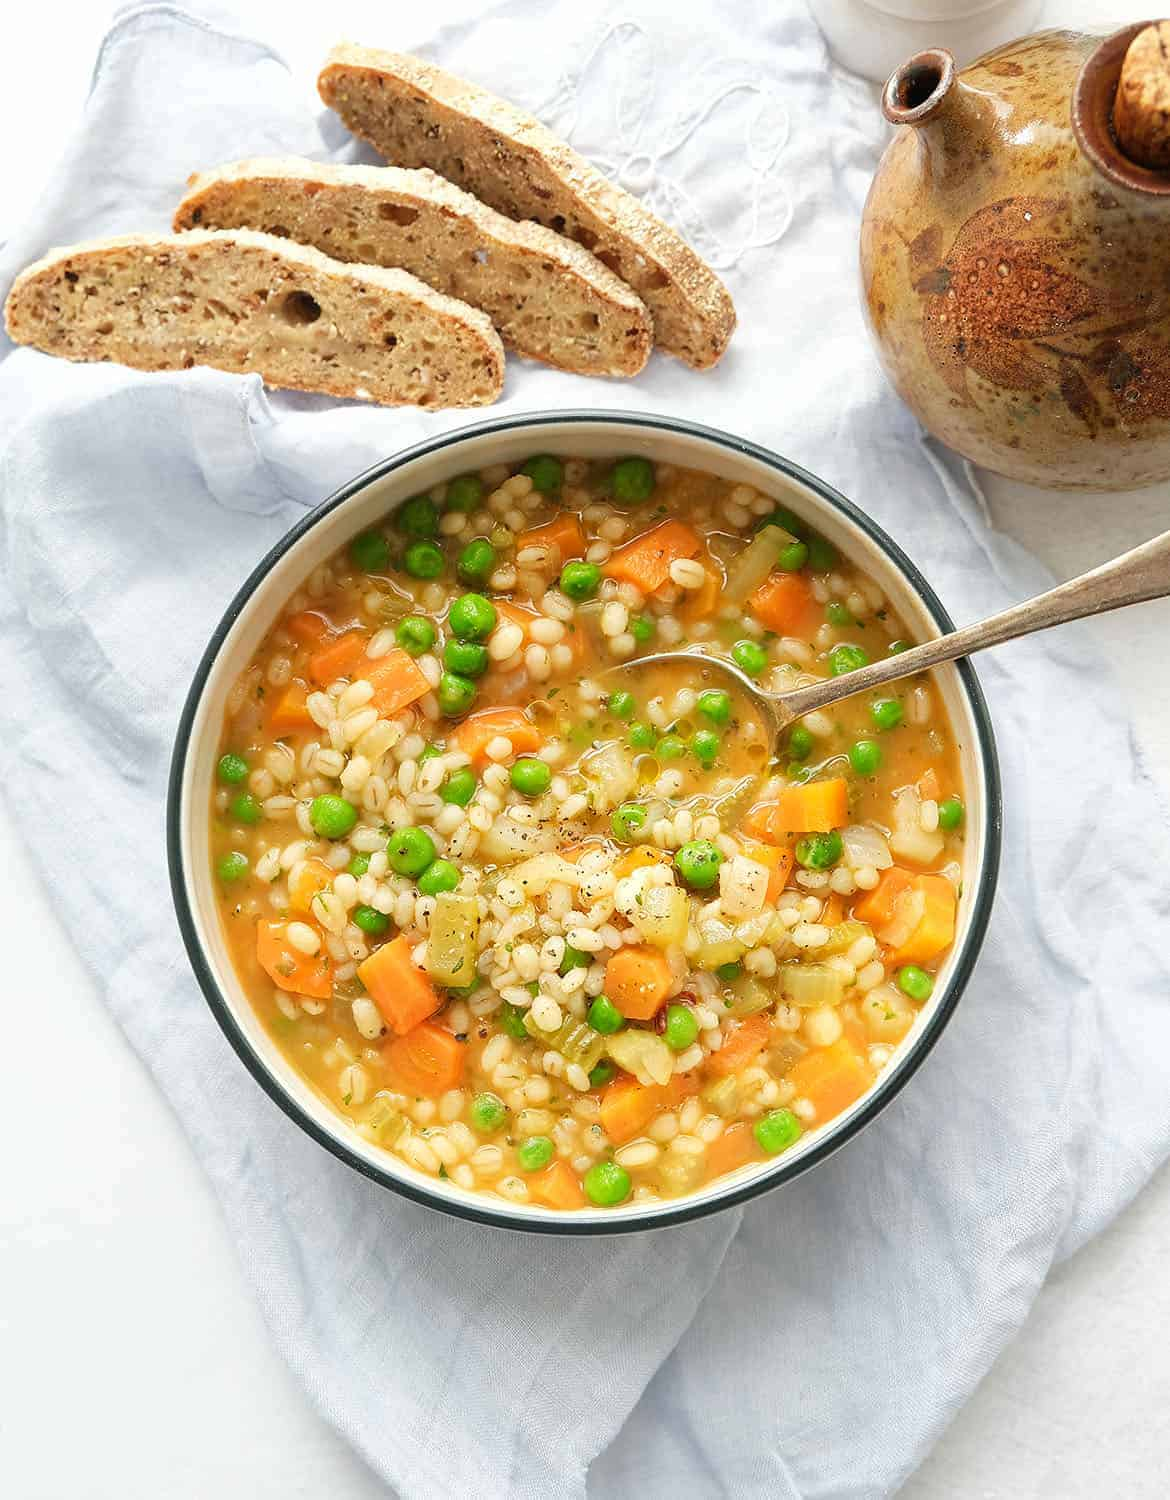 Vegetable barley soup in a white bowl with a spoon. Three slices of bread next to it.